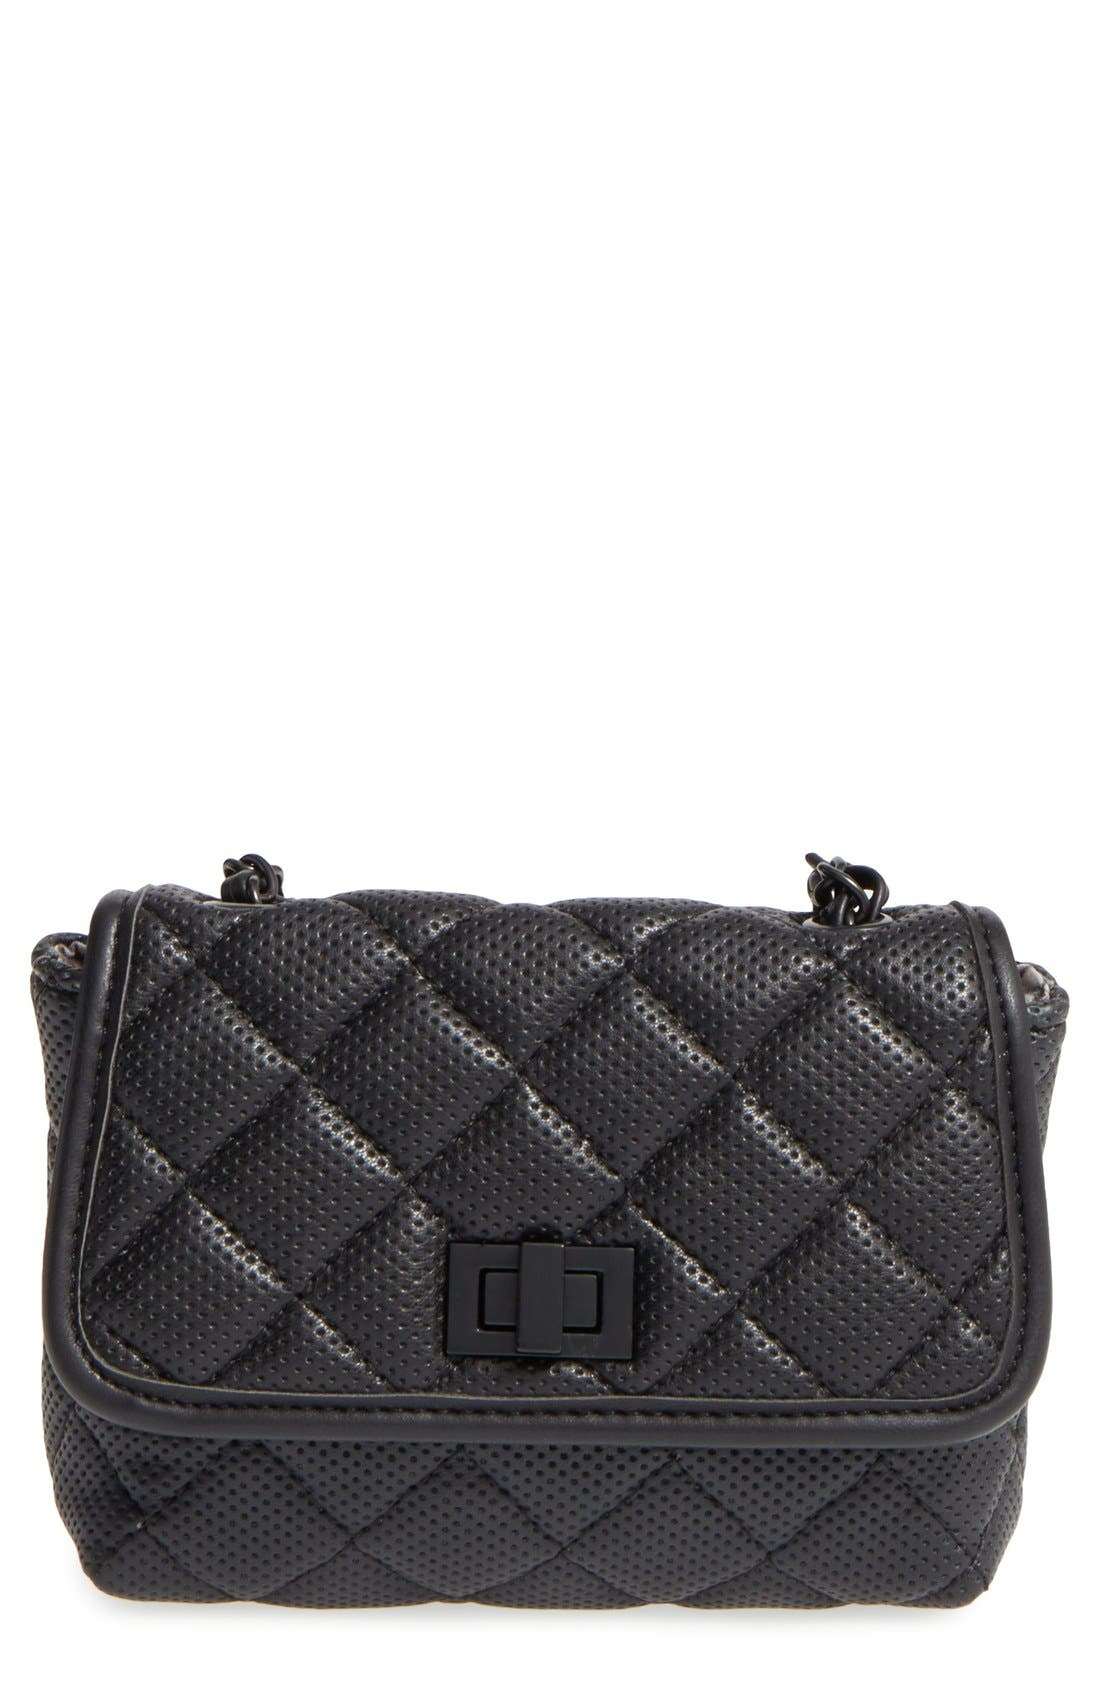 Alternate Image 1 Selected - Steve Madden 'B Clarre' Perforated & Quilted Faux Leather Crossbody Bag